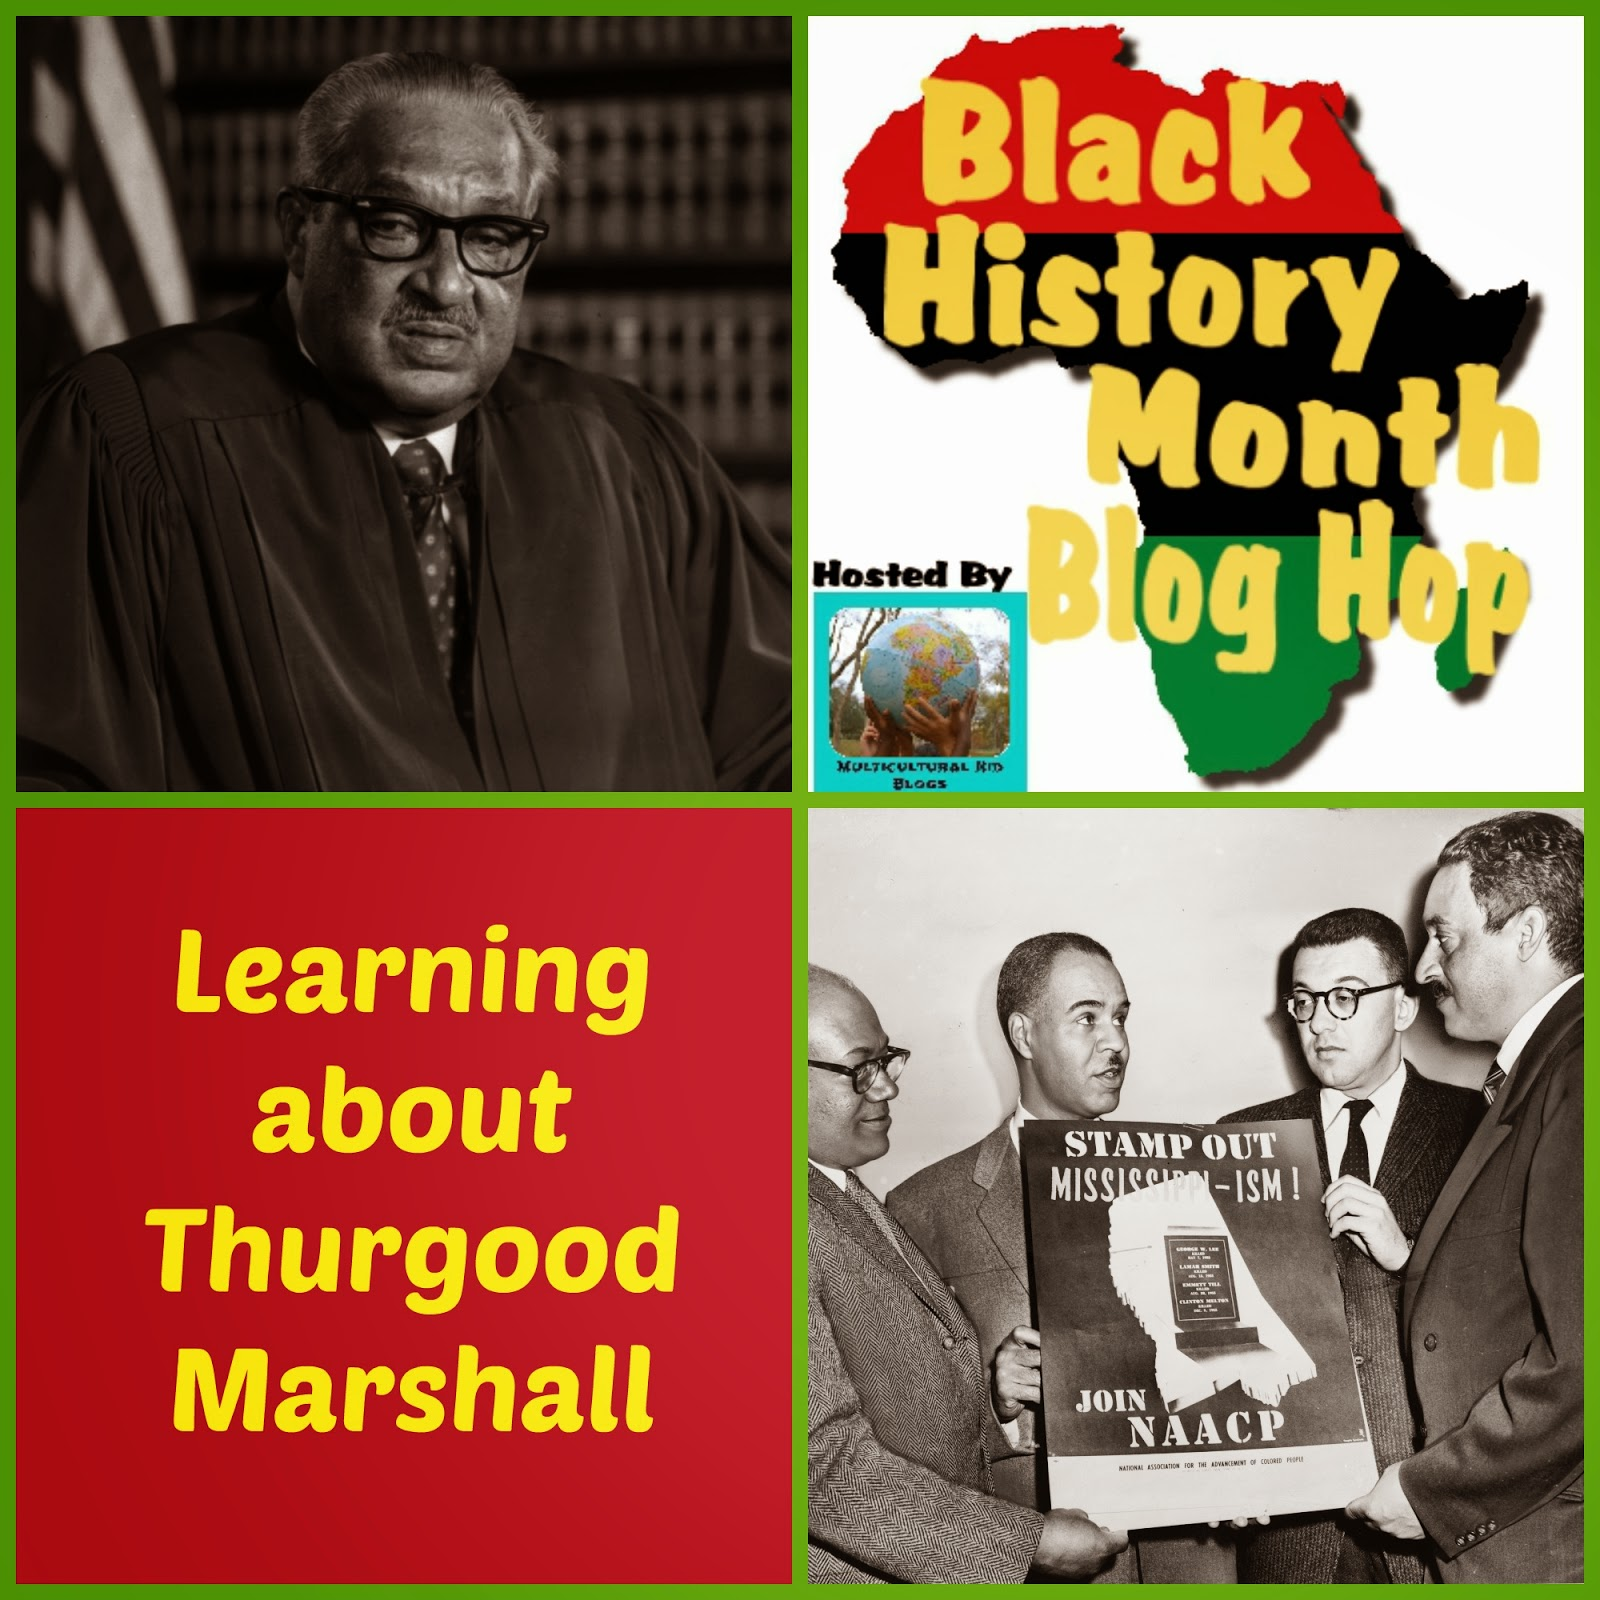 an introduction to the history of naacp Lesson 2: naacp history introduction and objectives lesson 2 objective at the completion of this lesson, you will be able to: describe the history of the naacp.